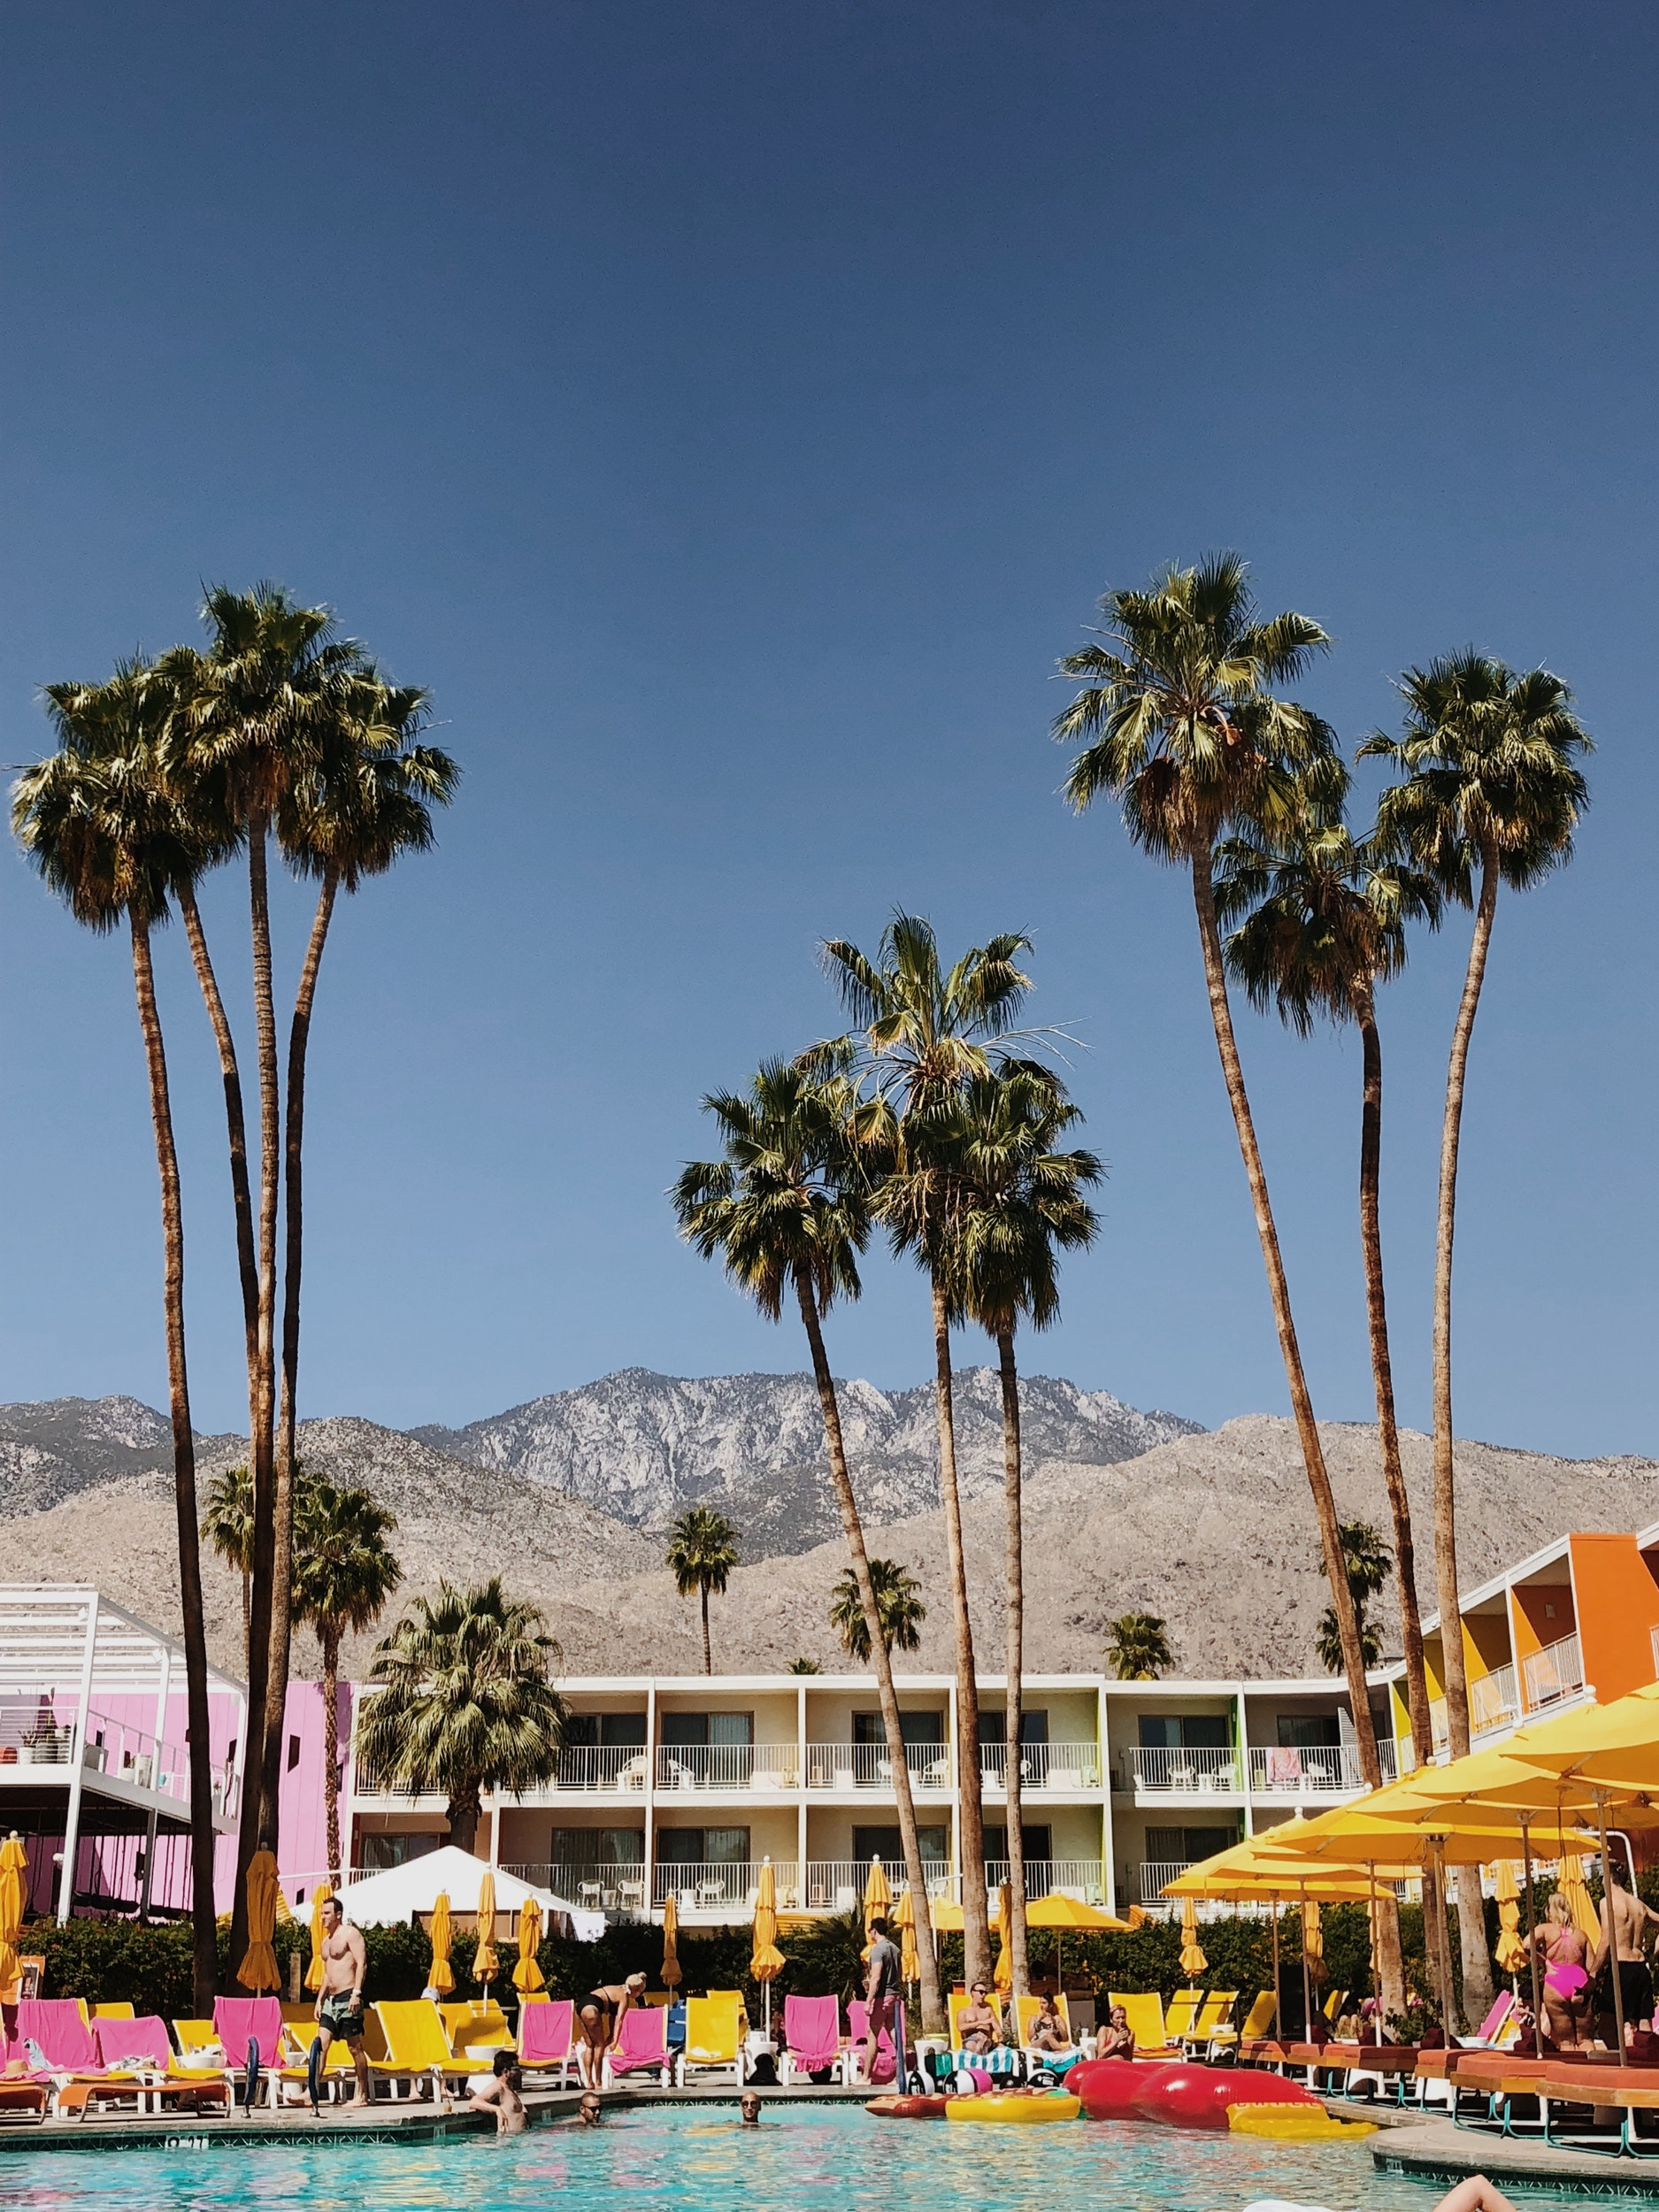 10 Places To Visit On Vacation In Southern California - Palm Springs - Disneyland - San Diego Coronado Hotel - Del Coronado - The Mission Inn Hotel and Spa - Long Beach - Santa Monica Pier - San Diego Amusement Parks - Hollywood - Richard Nixon Presidential Library - The Getty - Southern California Vacation - Tips For Planning A Southern California Vacation - SoCal Vacation - Travel Blog For Southern California - #california #travel #usa #socal